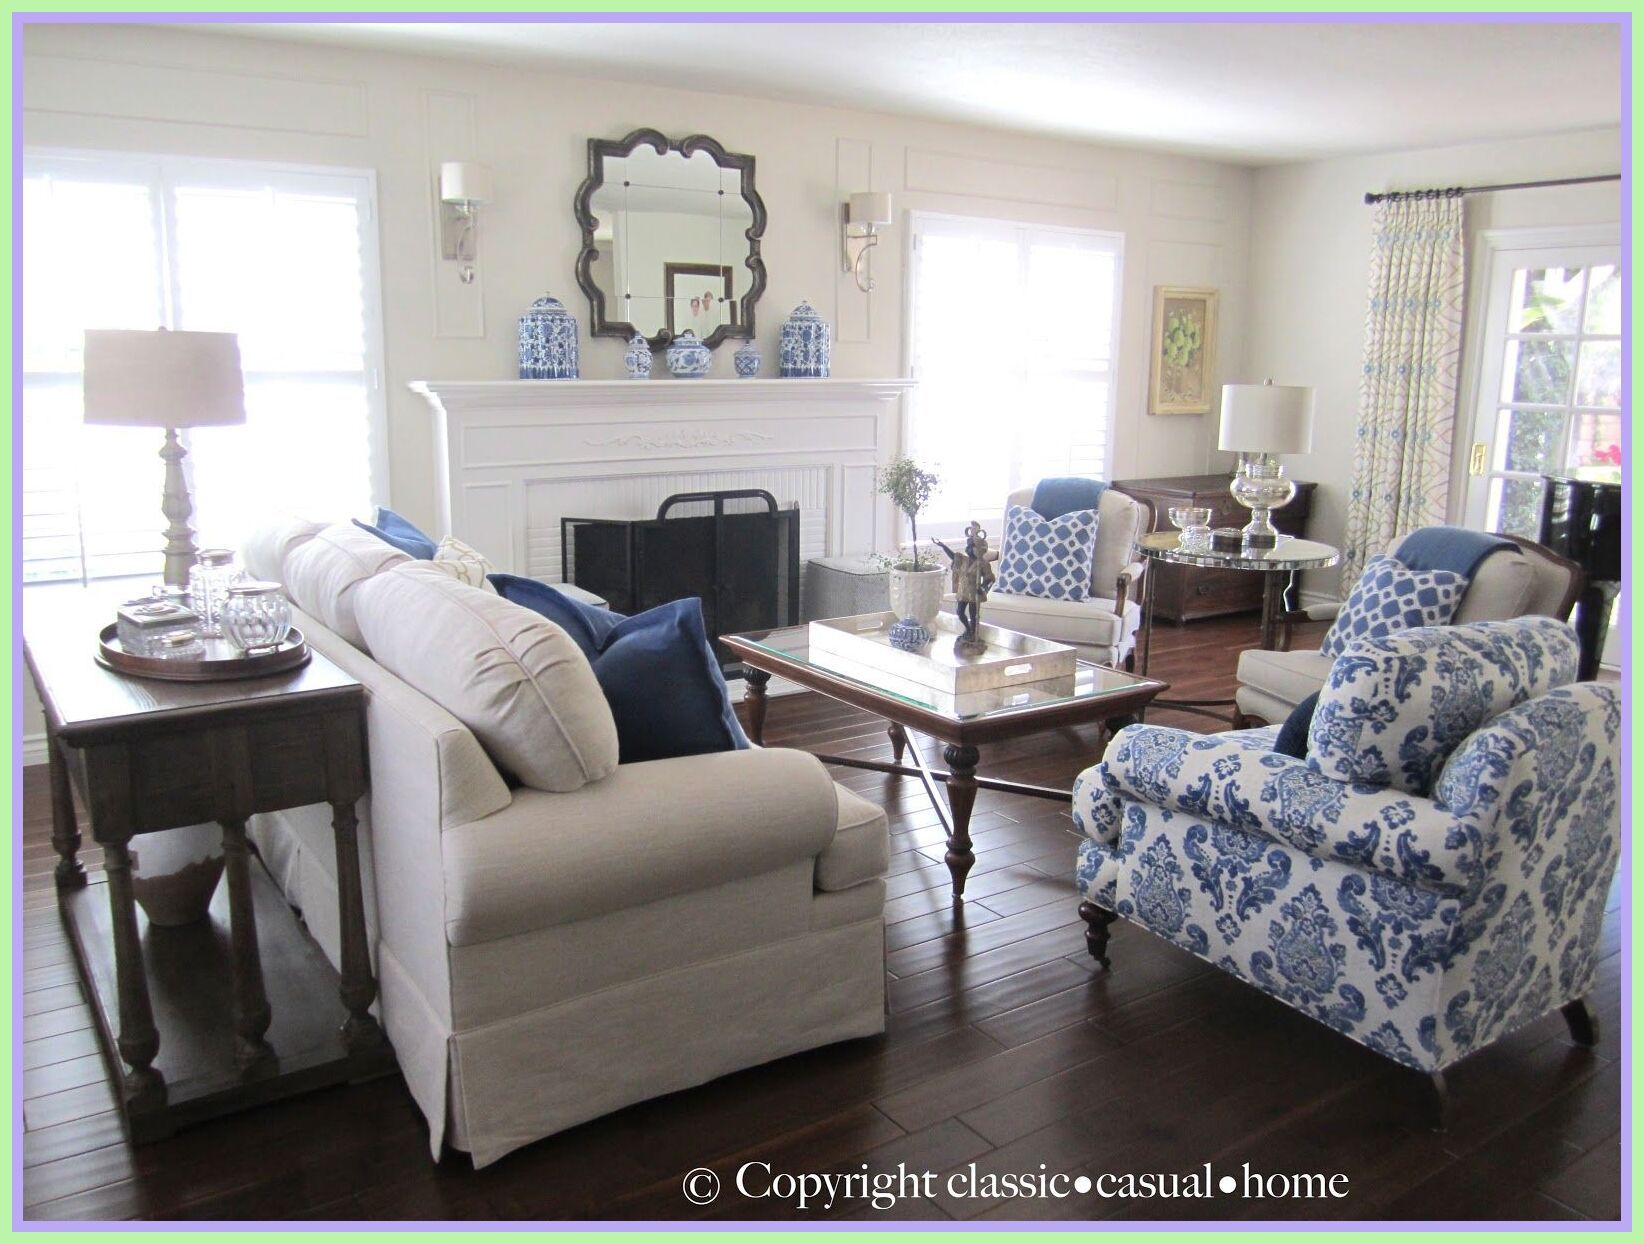 41 Reference Of White Couch Living Room Design In 2020 Living Room White Blue And White Living Room White Sofa Living Room #royal #blue #living #room #decorating #ideas